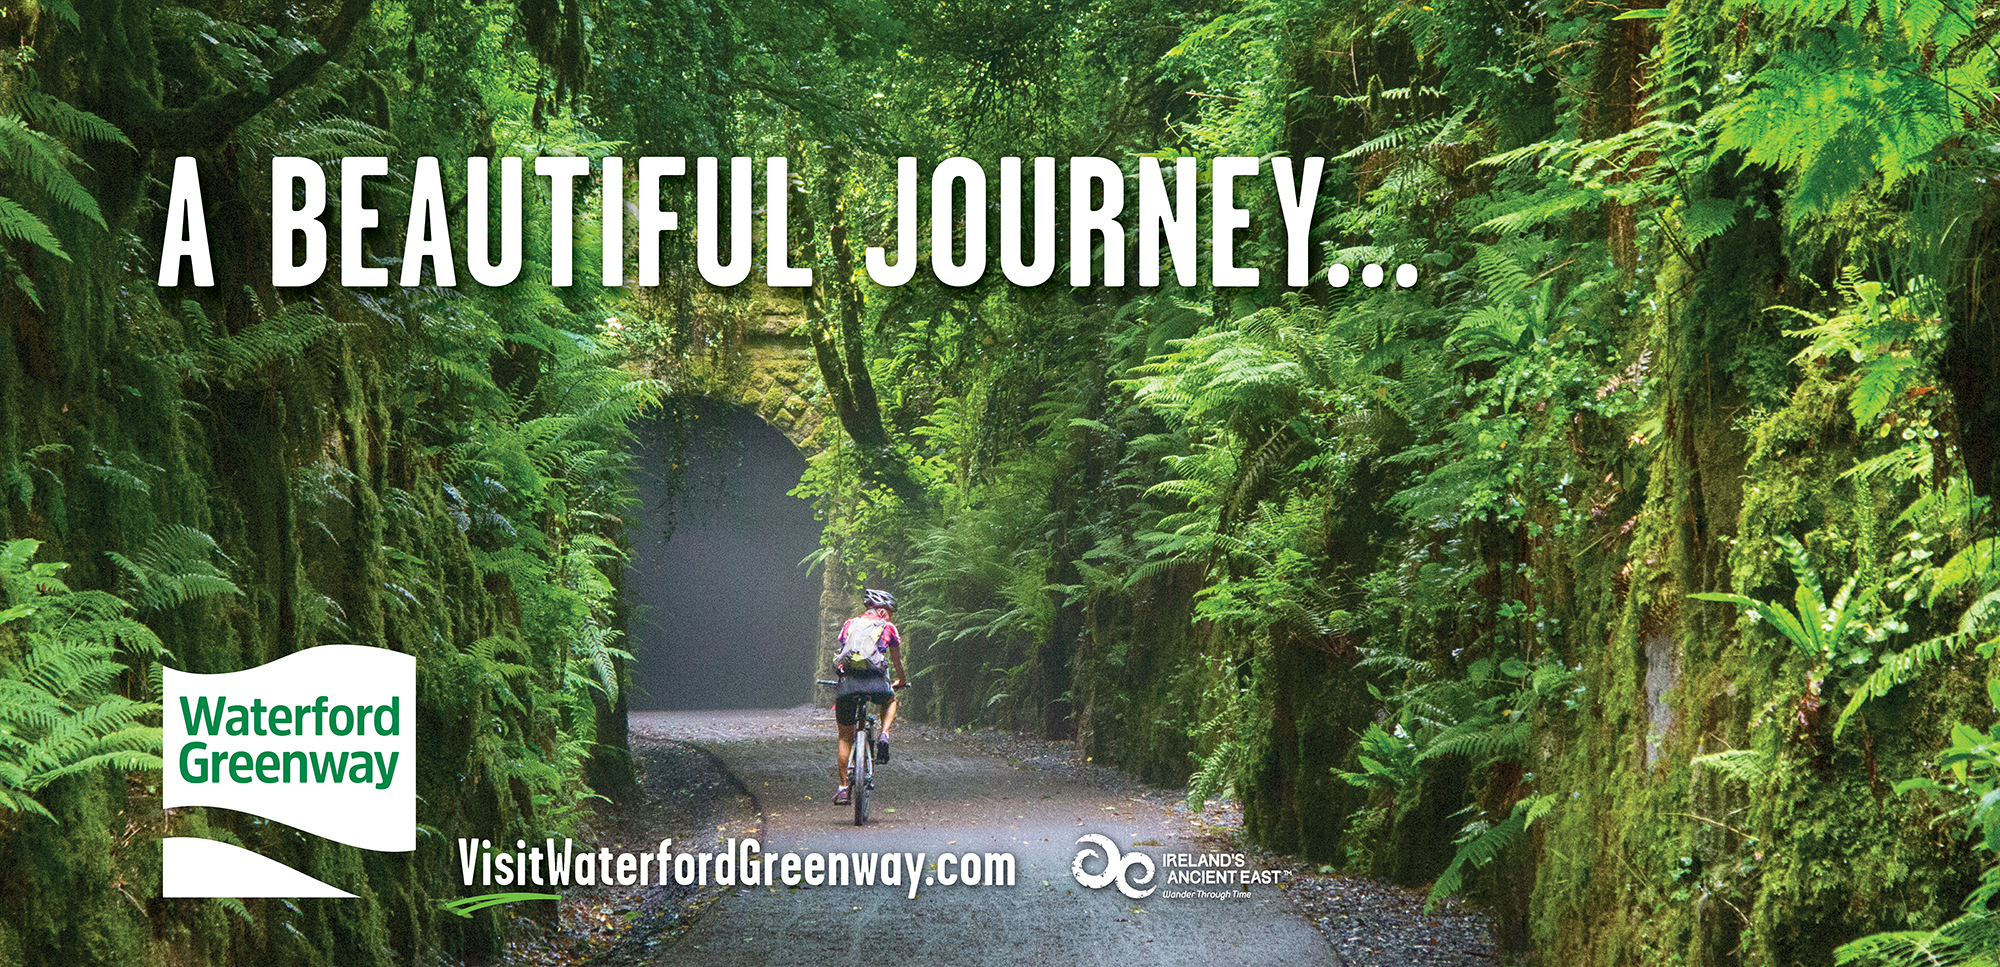 Cover image: Waterford Greenway Billboard Posters